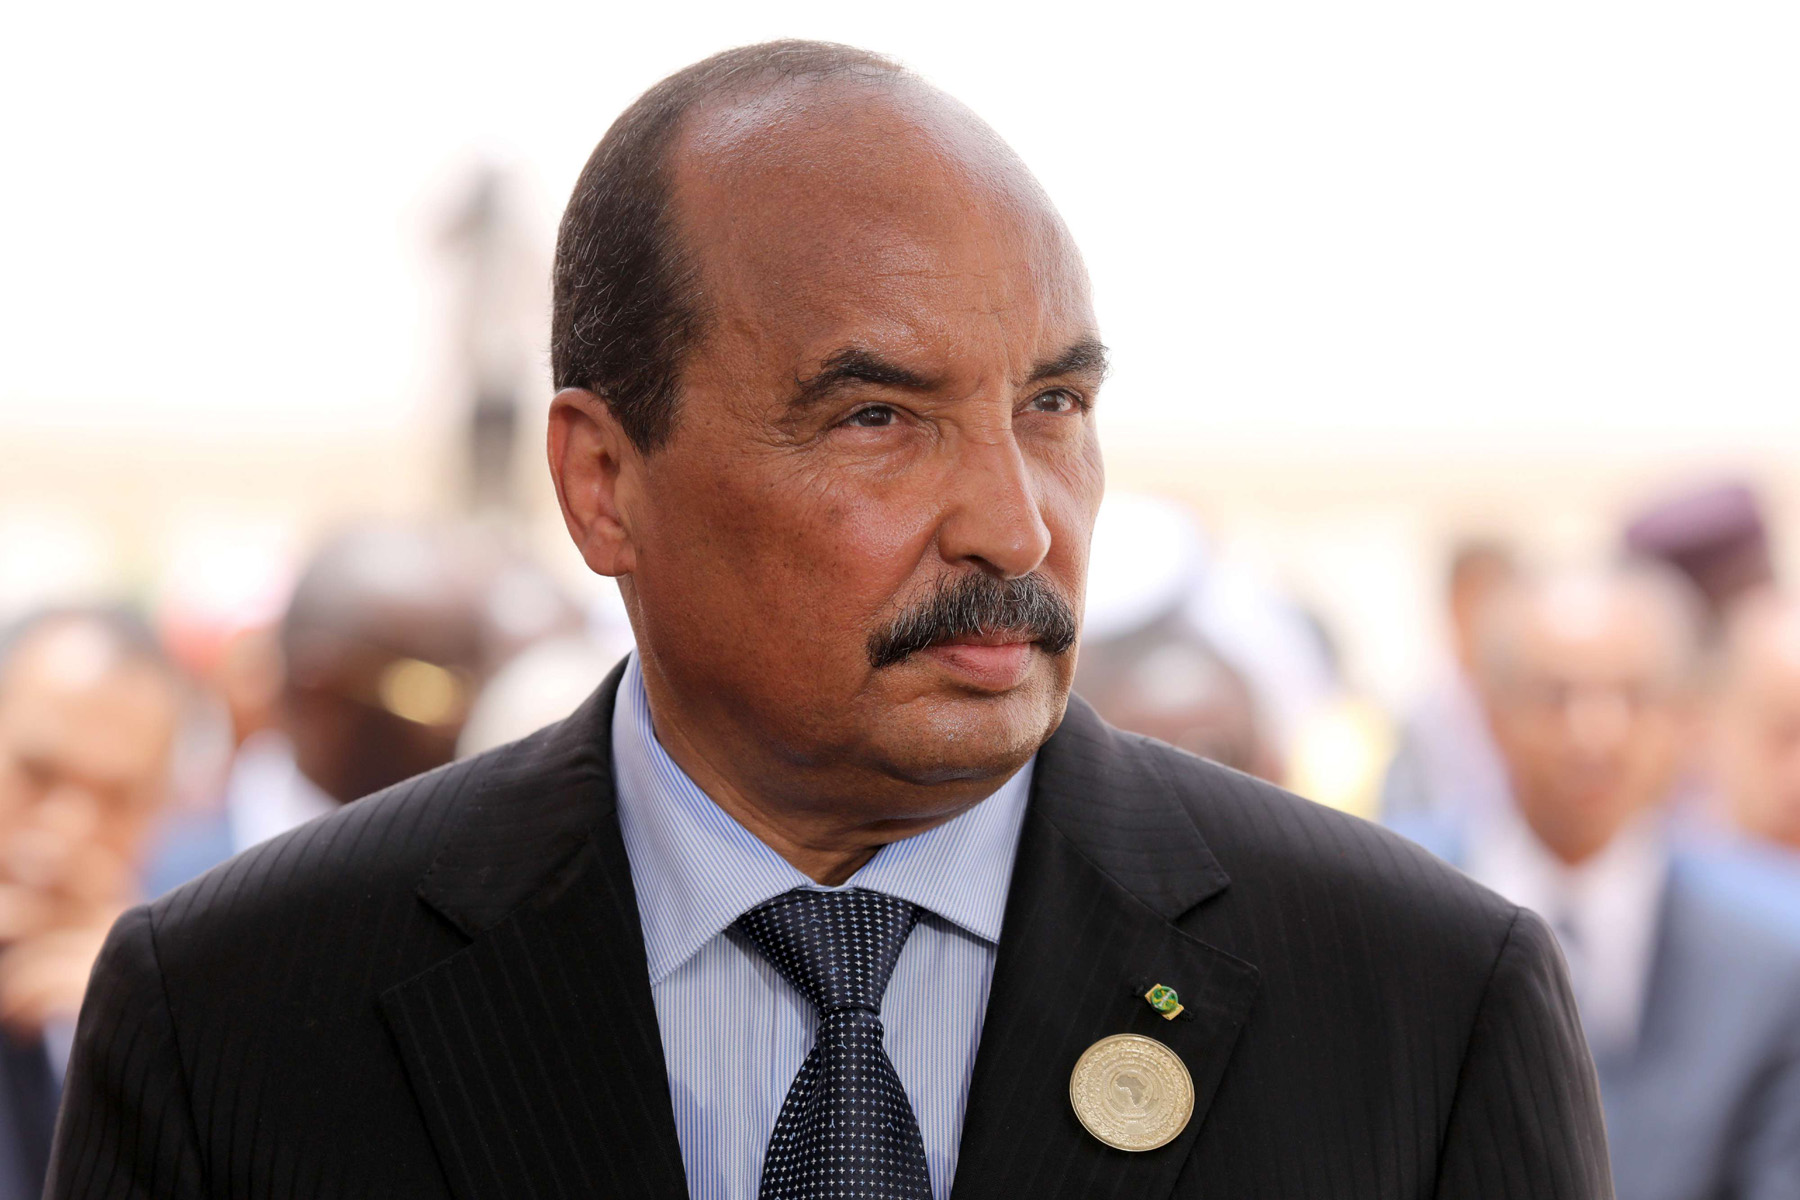 Mauritania's President Mohamed Ould Abdel Aziz at Nouakchott airport, on July 2. (AP)